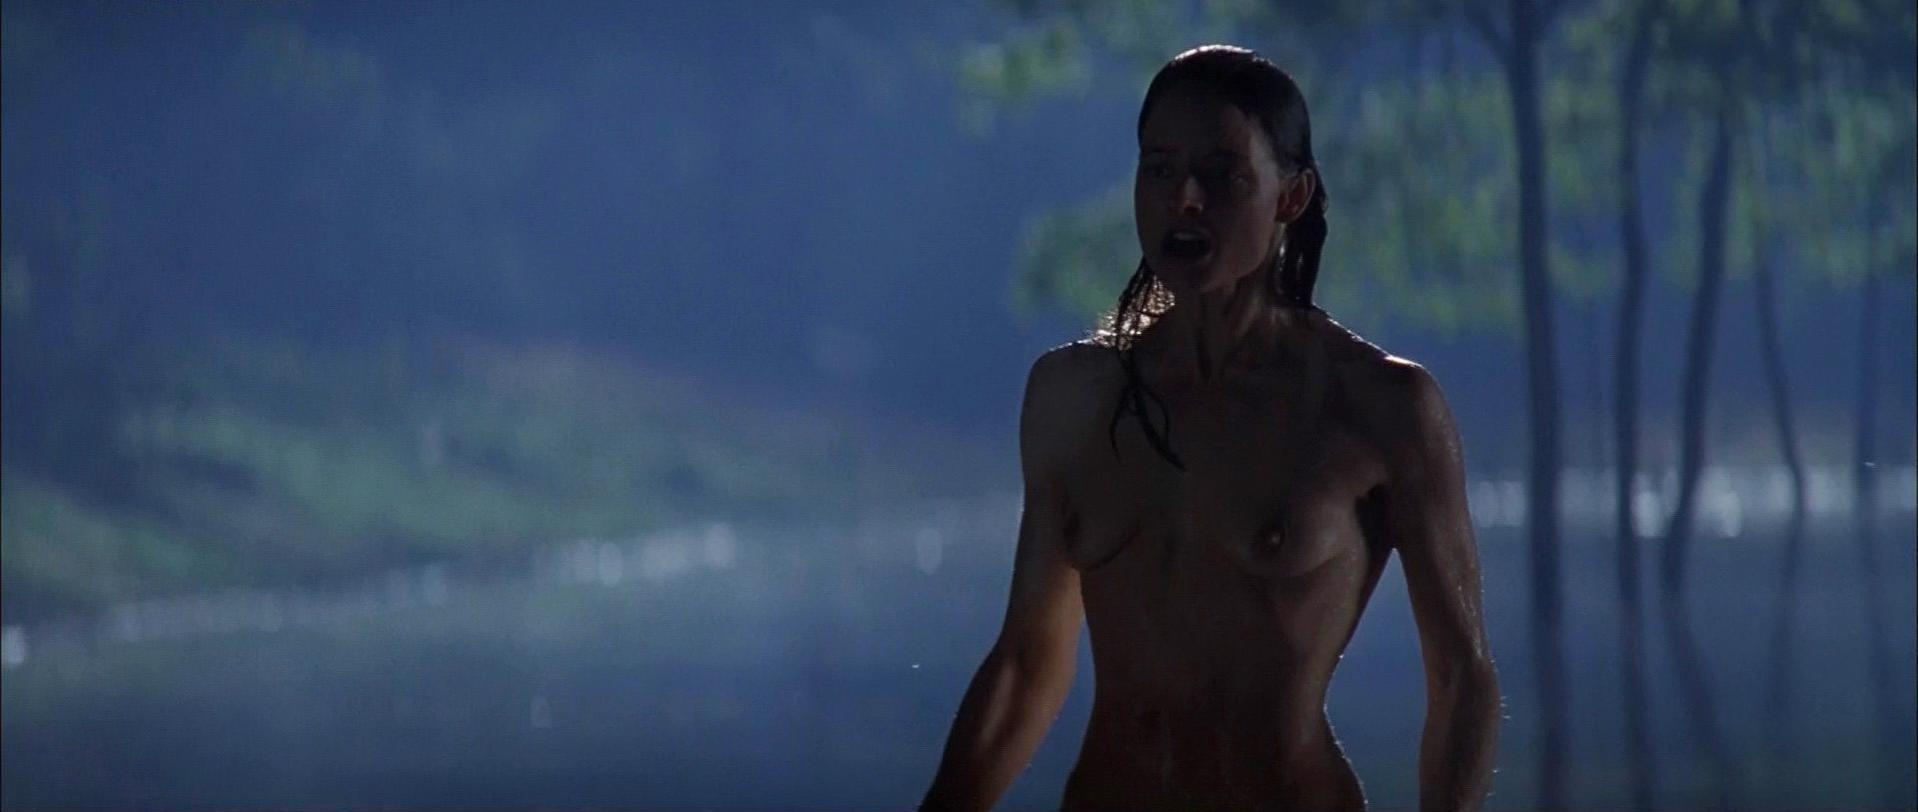 candice love full frontal nudity